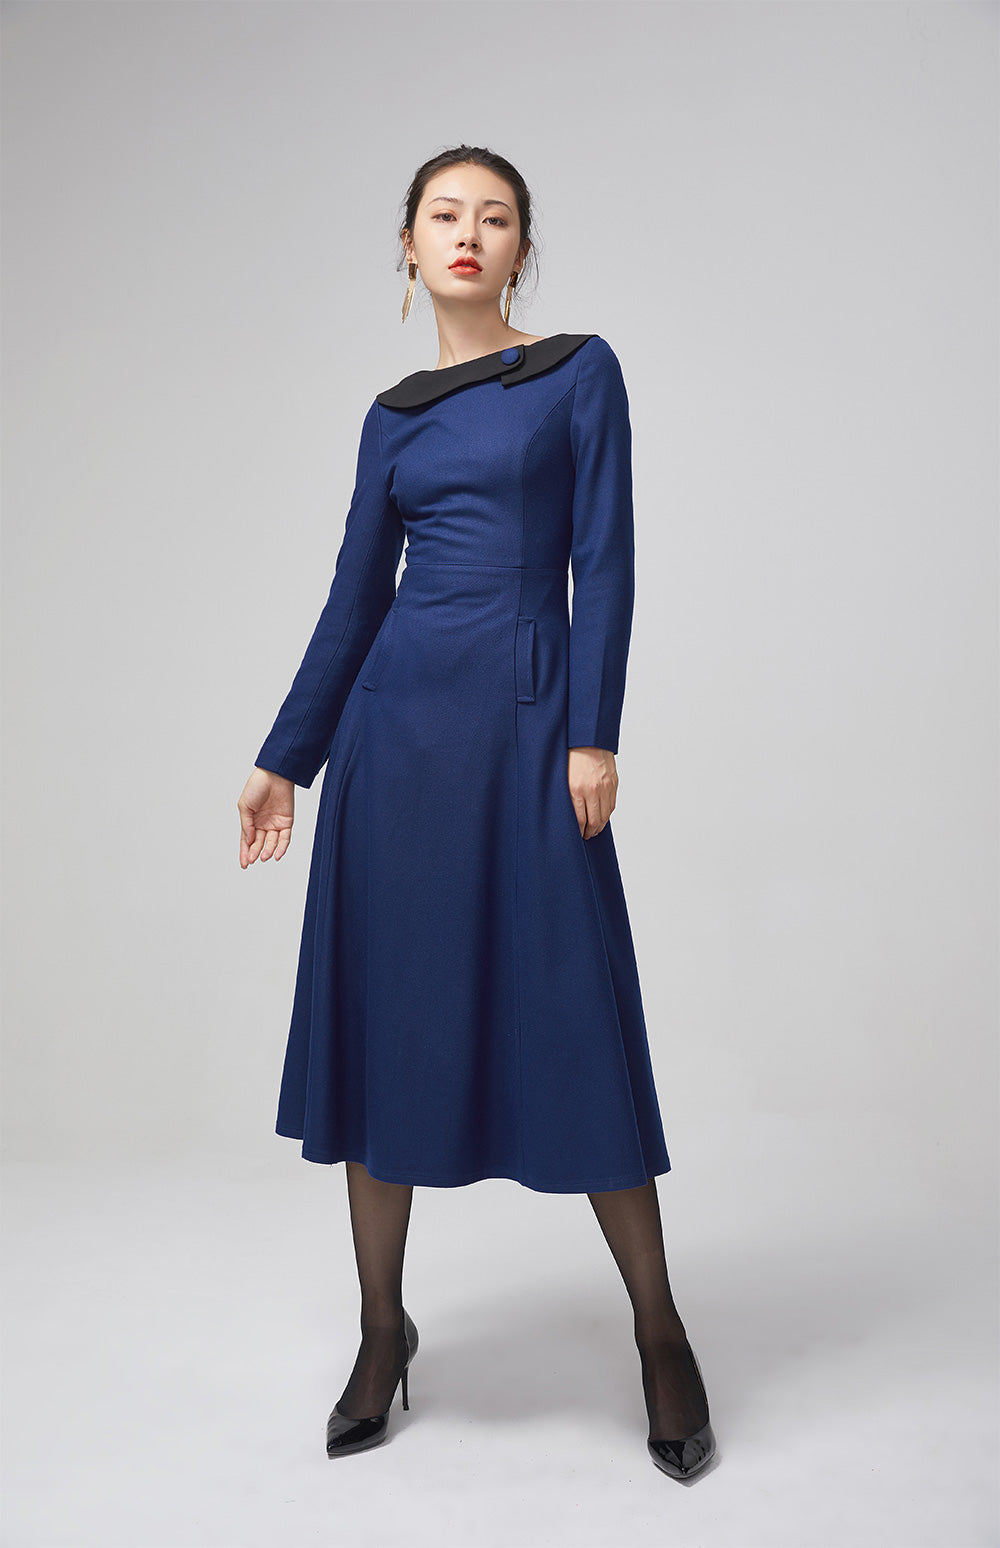 blue wool long women dress with long sleeves 2208#